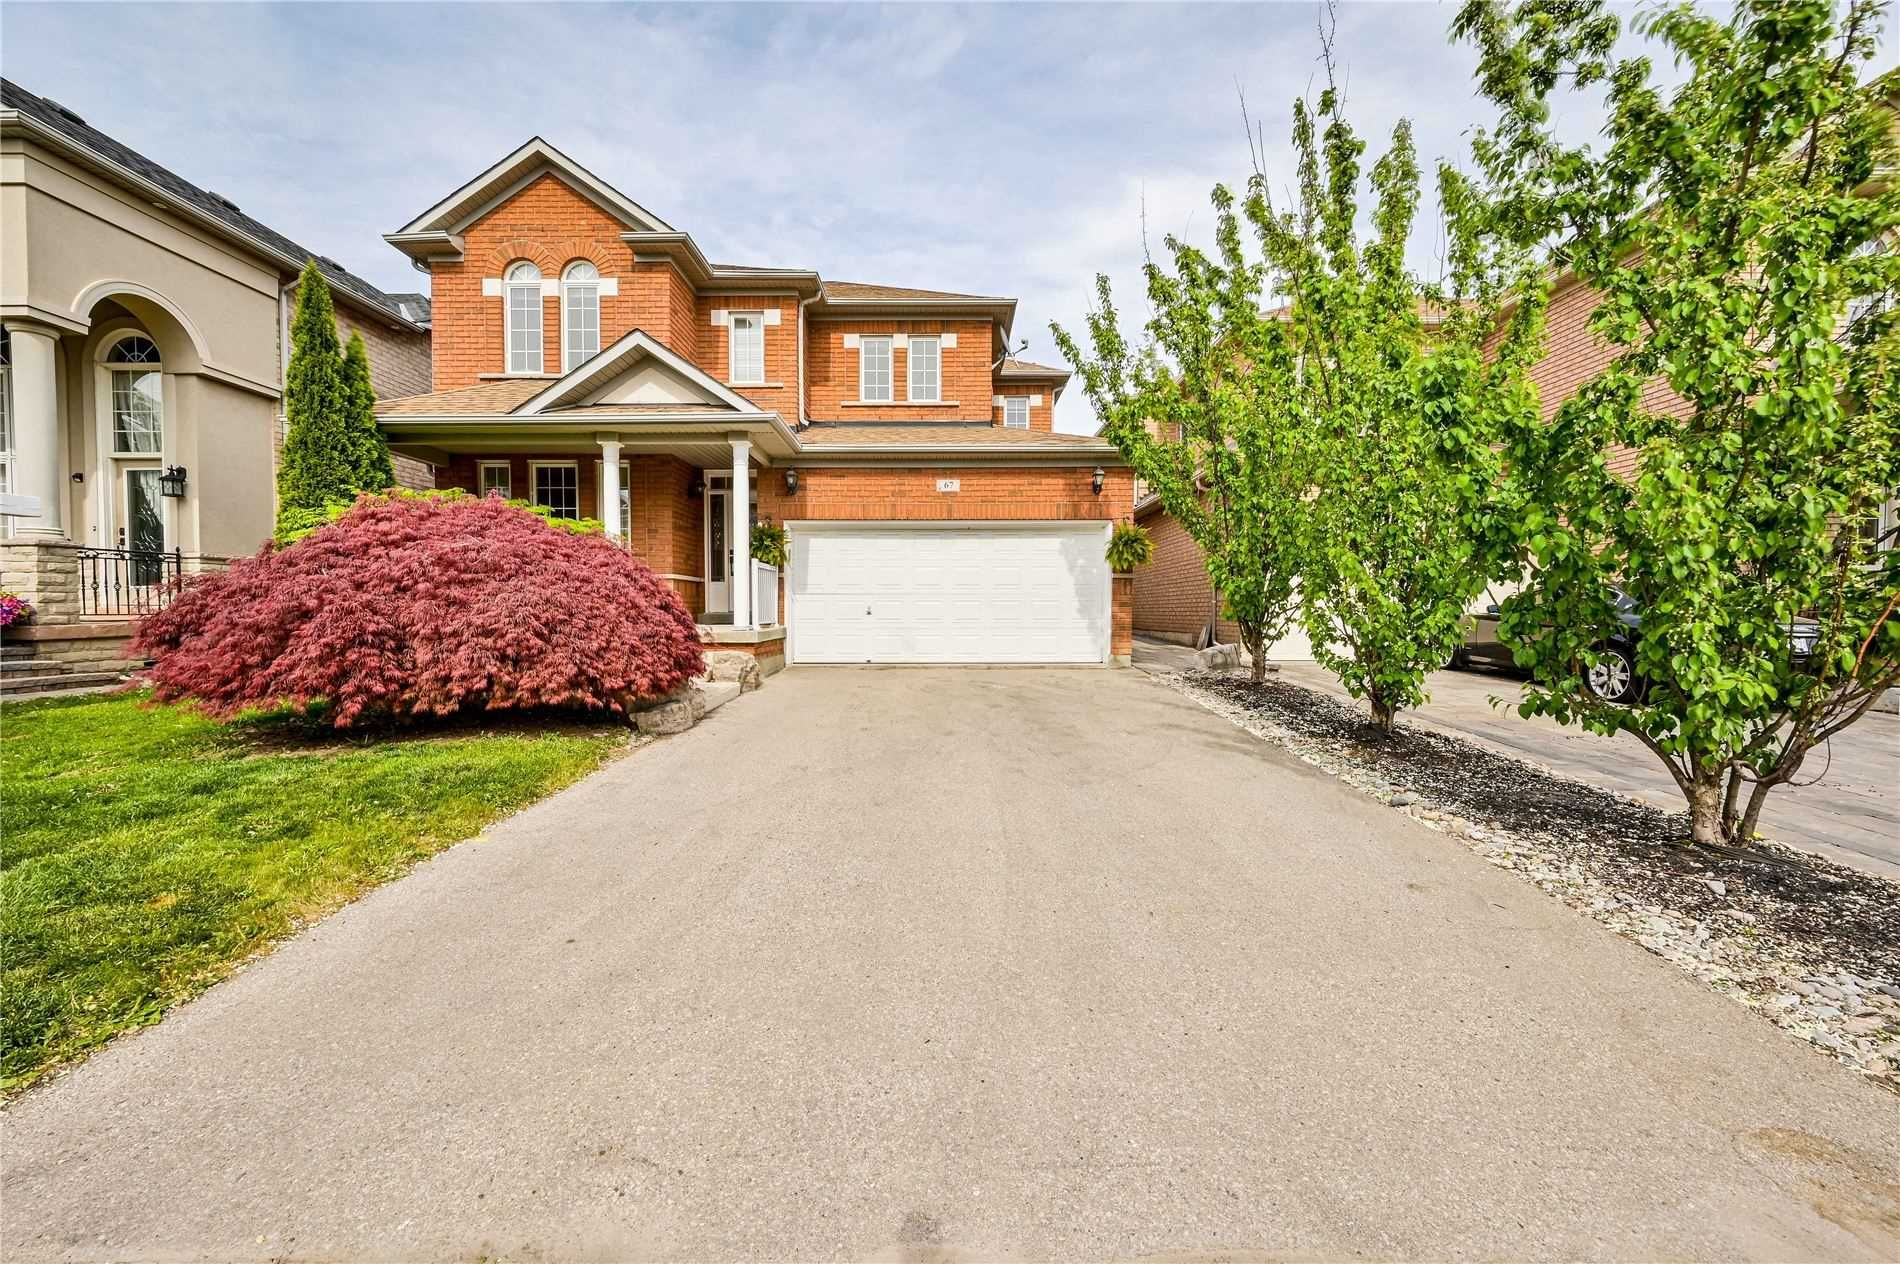 Main Photo: 67 Oland Drive in Vaughan: Vellore Village House (2-Storey) for sale : MLS®# N5243089